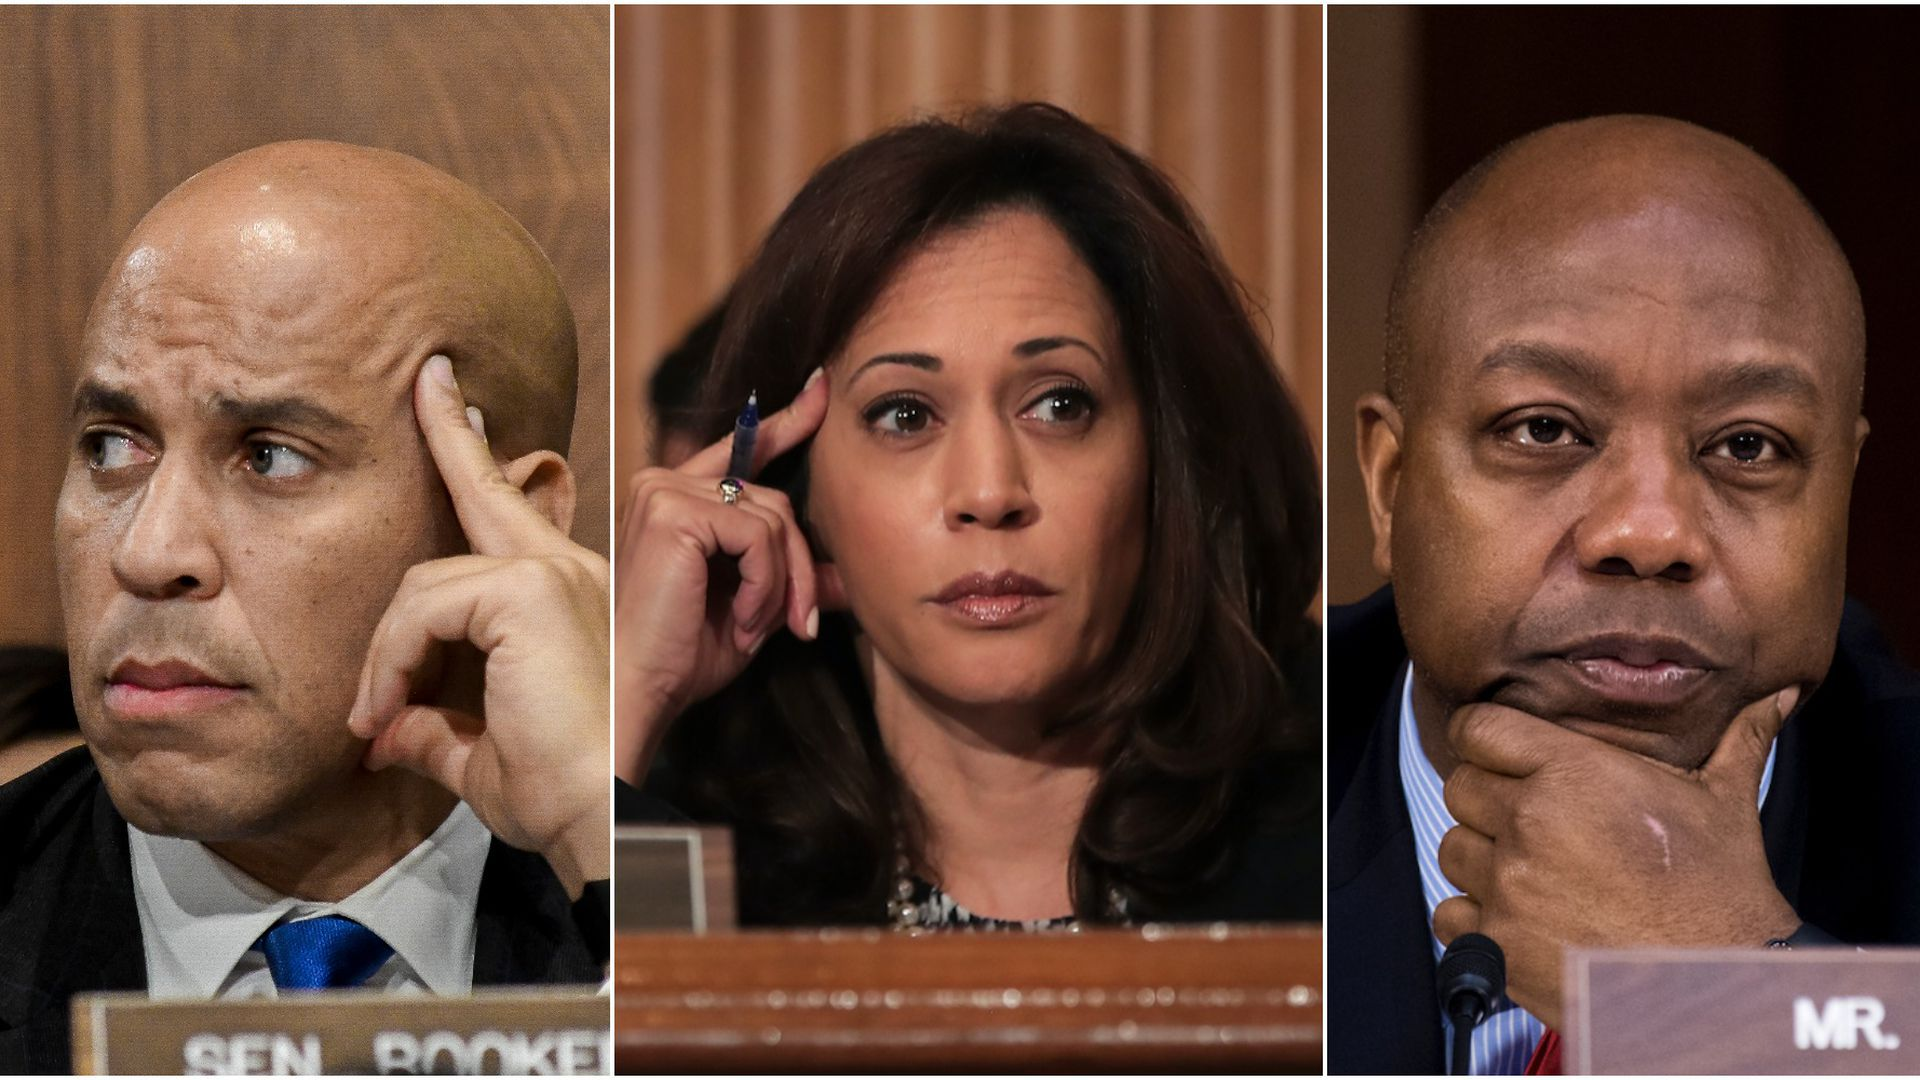 Senators Cory Booker, Kamala Harris, and Tim Scott in split screens lean their heads in their hands.